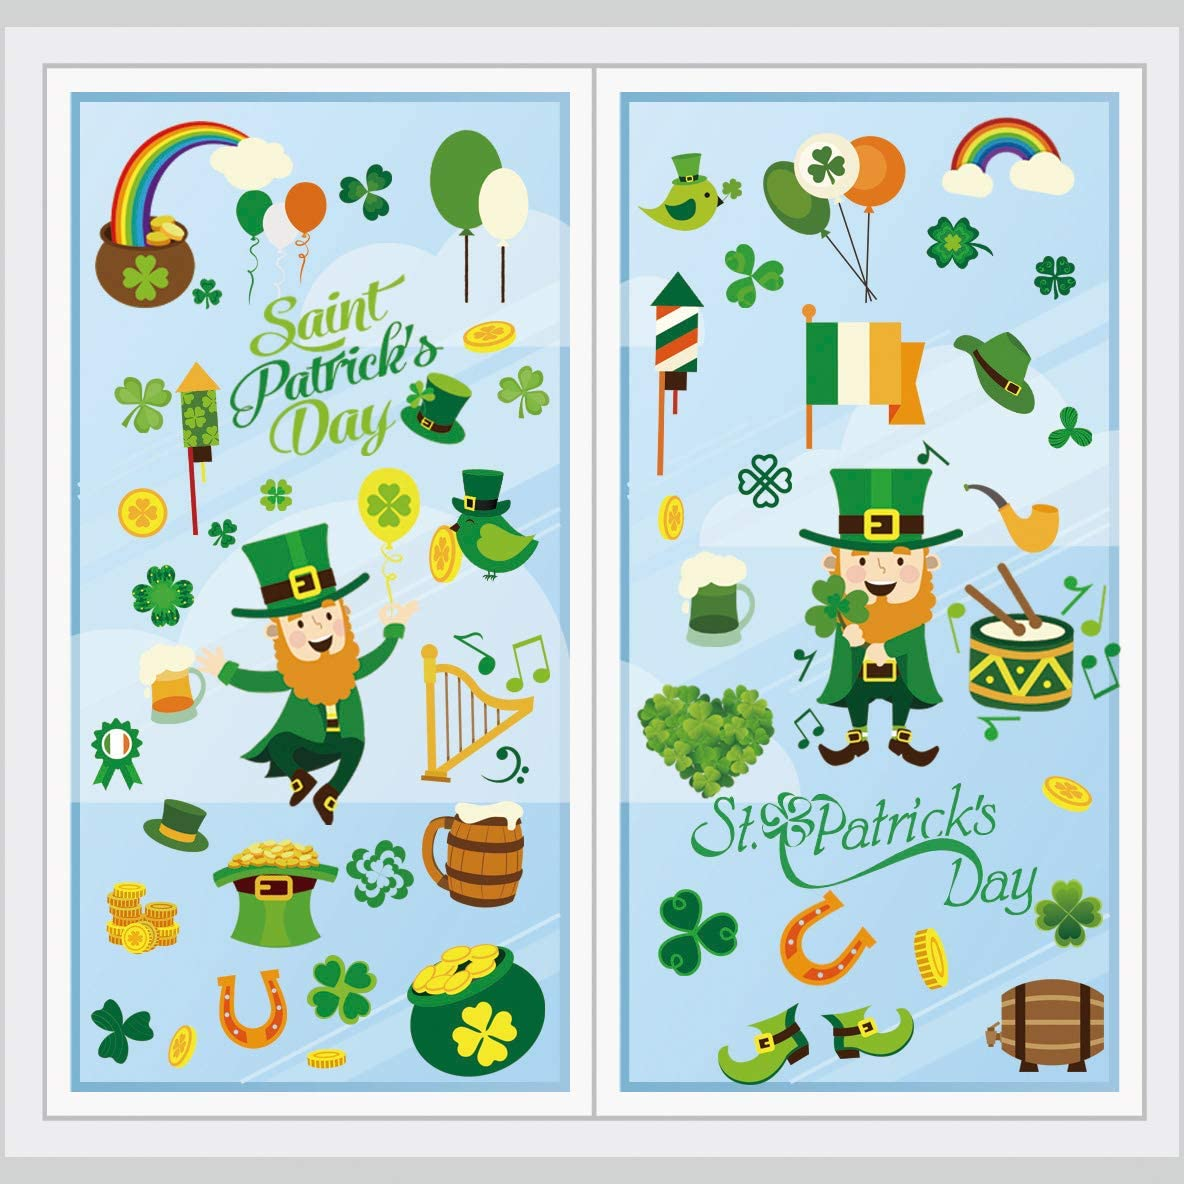 Patricks Day Decorations Window Clings Decor 6 Sheets 77 pcs Ivenf St Extra Large Shamrock Top Hat Gold Coins Decal Stickers for Kids School Home Office Accessories Party Supplies Gifts